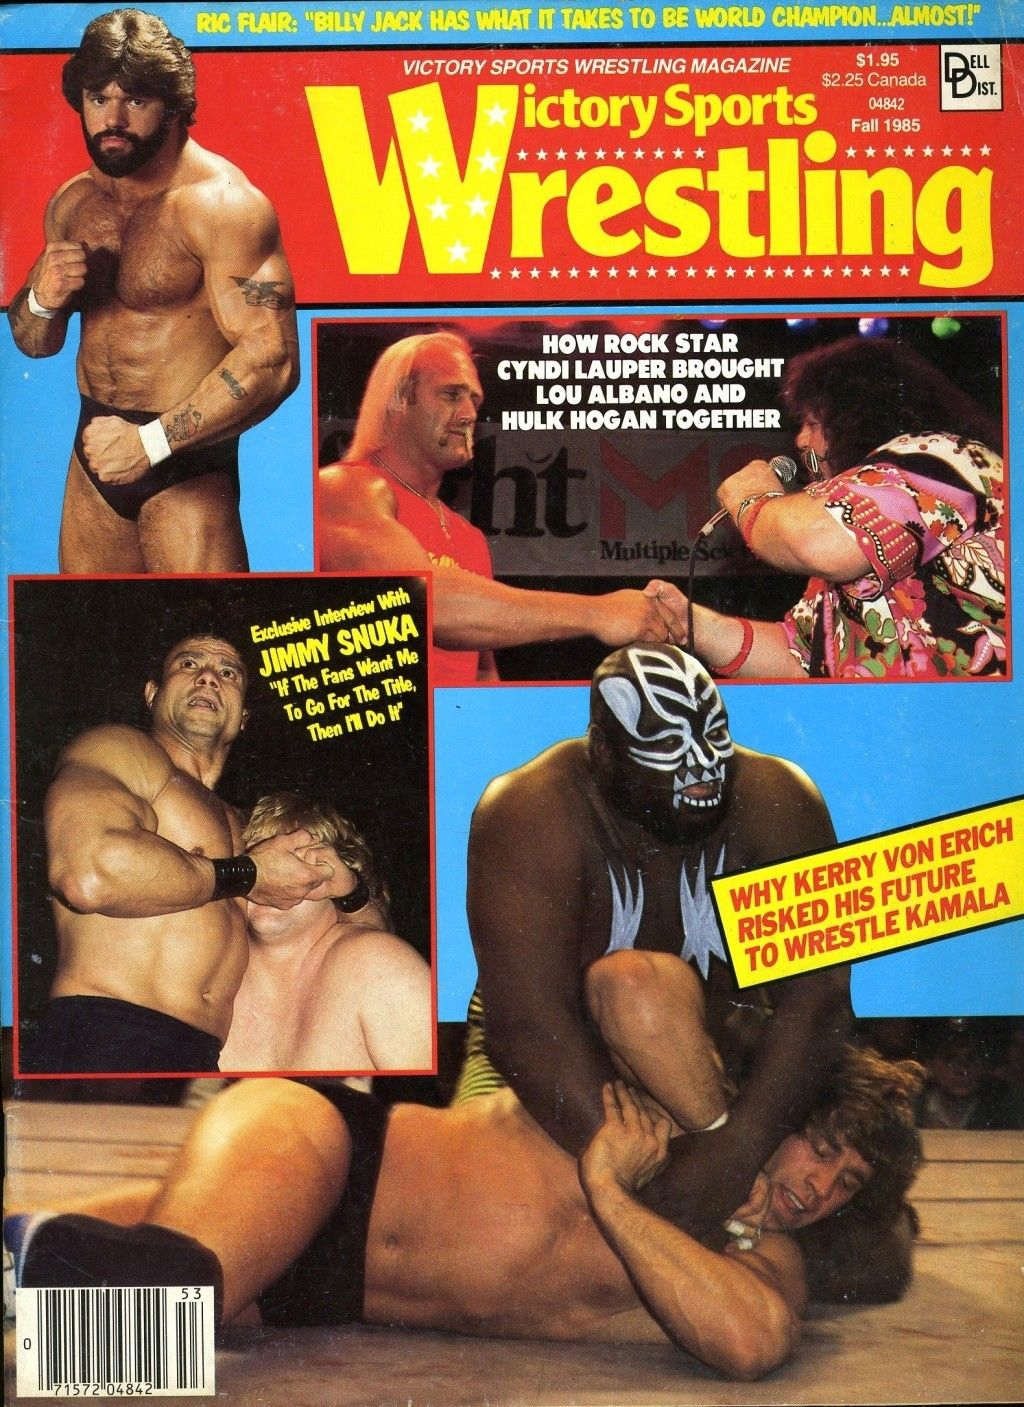 Victory Sports Wrestling - Fall 1985